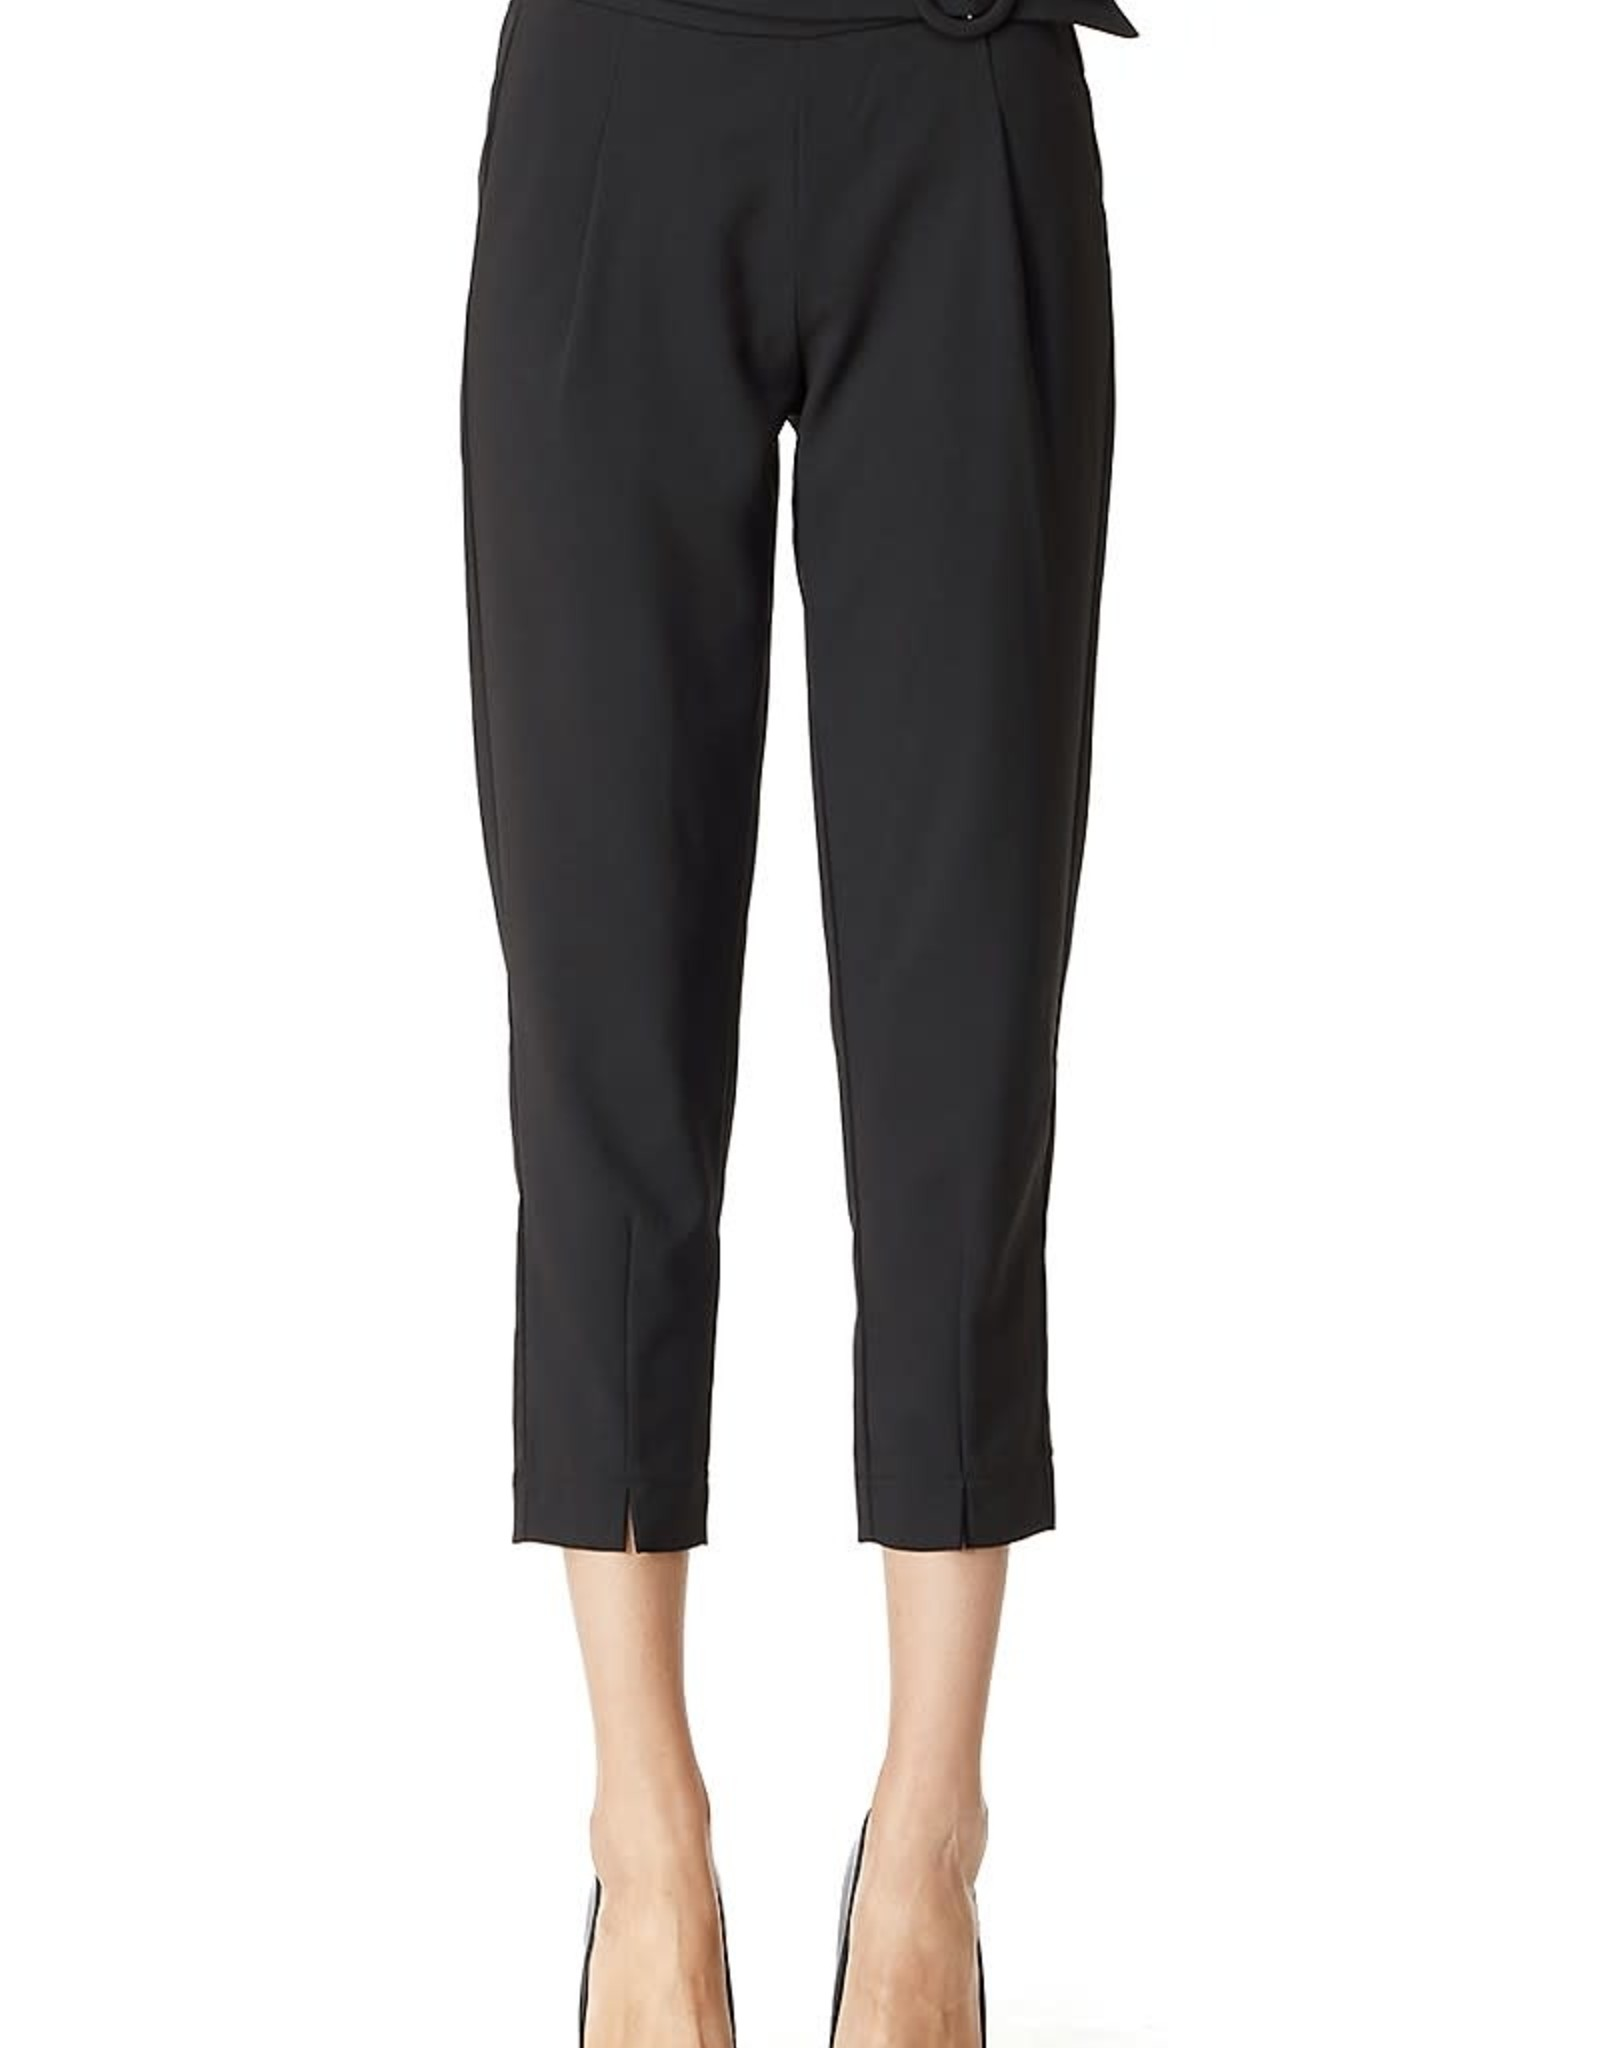 Miss Bliss Cropped Belted Pants- Black